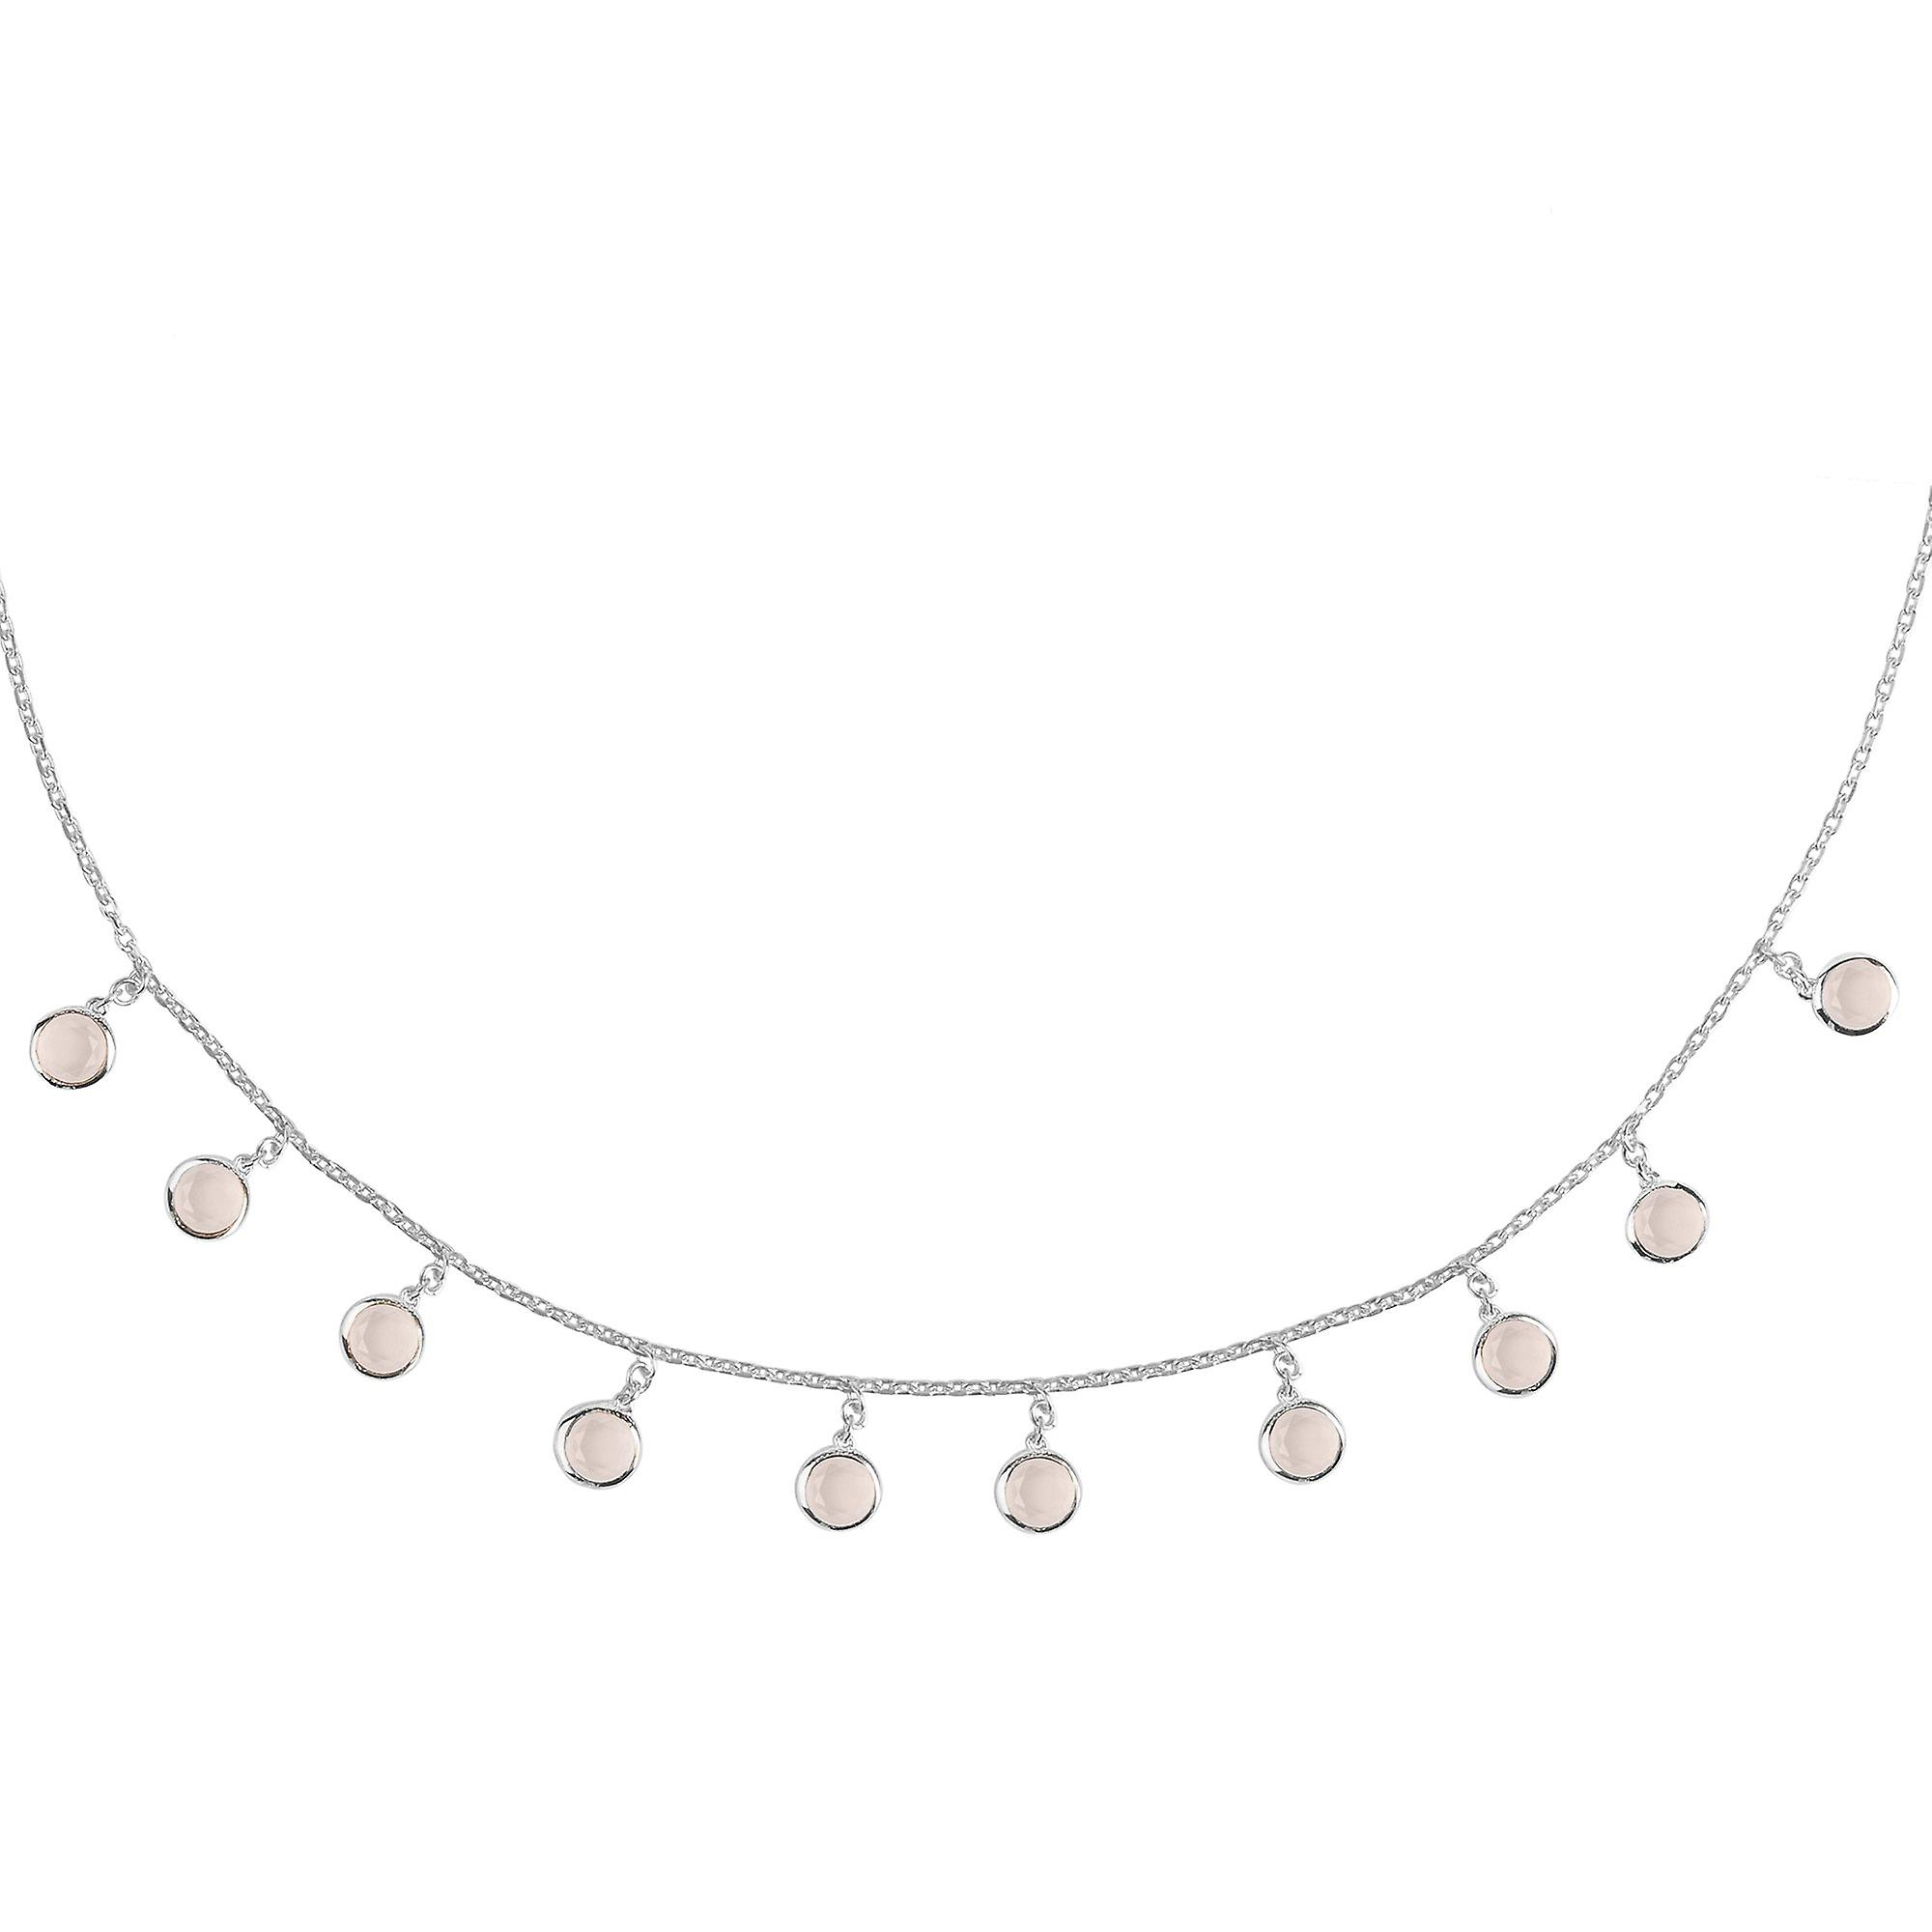 Latelita Gemstone Choker Round Necklace Pink Rose Quartz 925 Sterling Silver